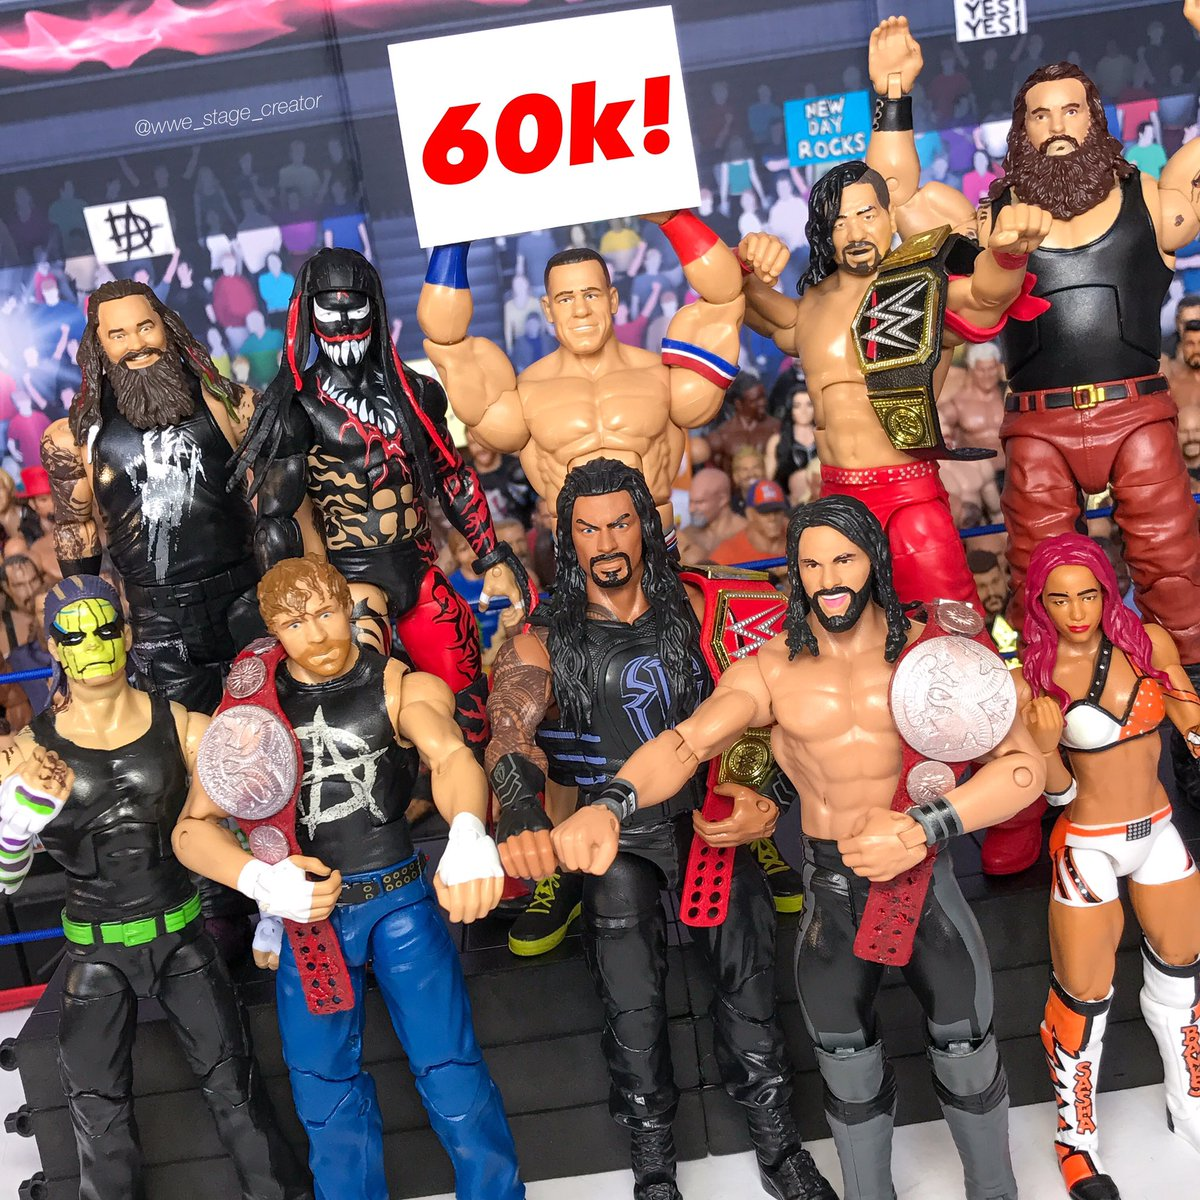 Just hit 60k followers on Instagram! #WWE #RAW #SummerSlam #SDLive <br>http://pic.twitter.com/Kc2BZvjyct